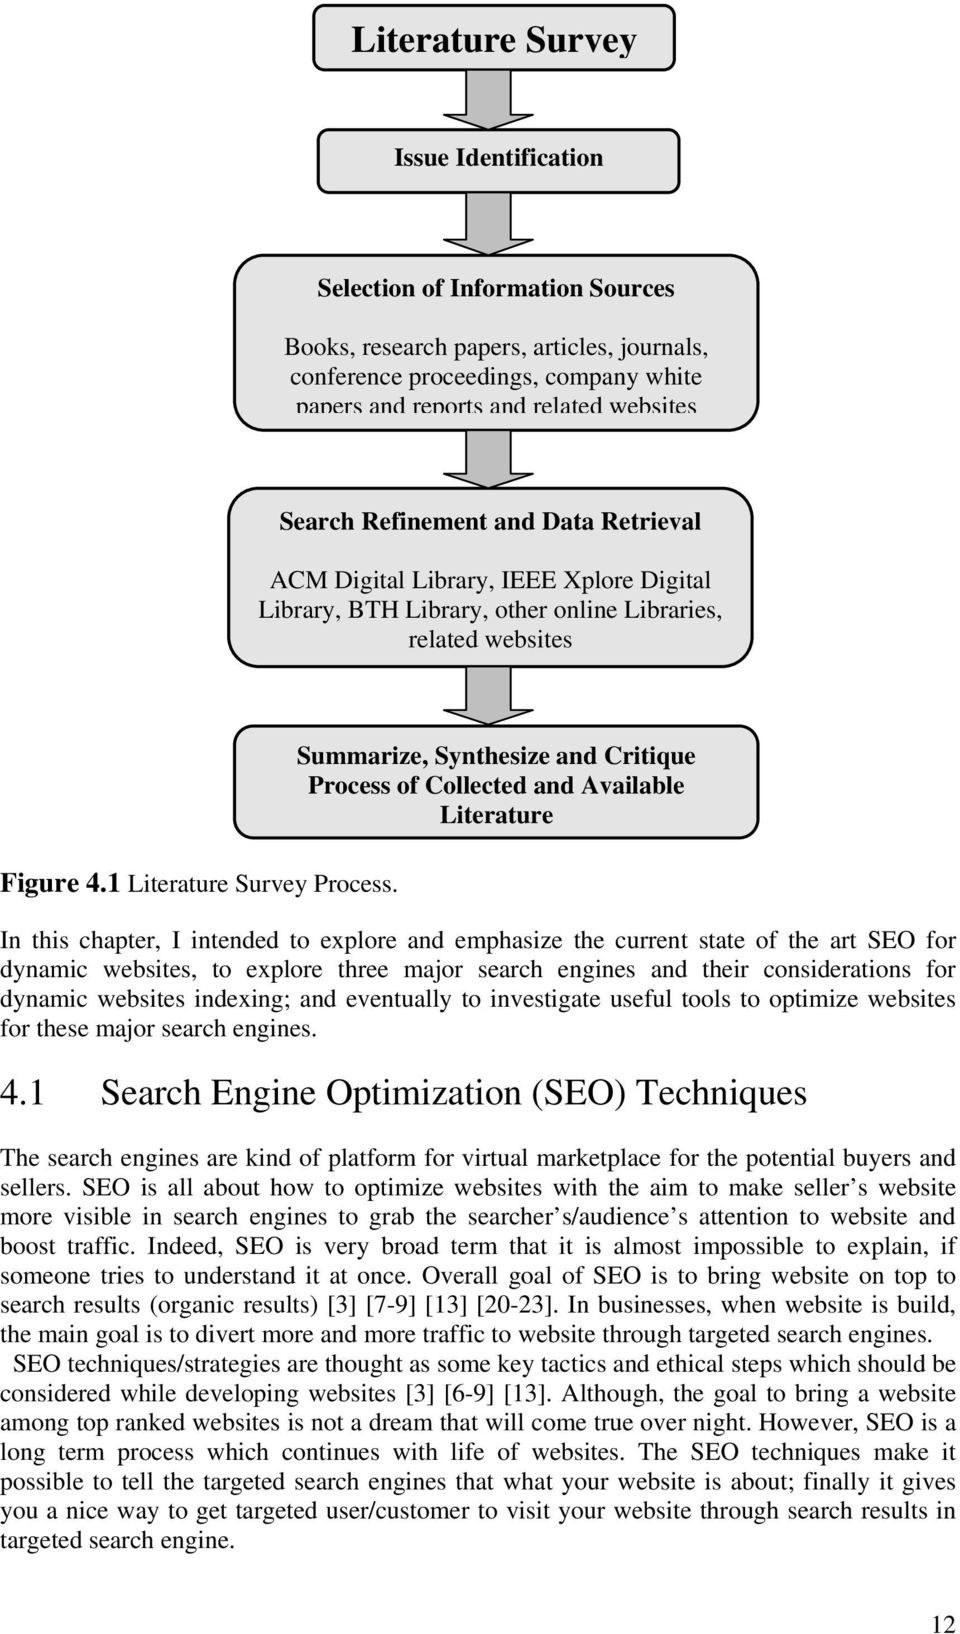 004 Ieee Research Paper Search Engine Optimization Page 20 Imposing Full